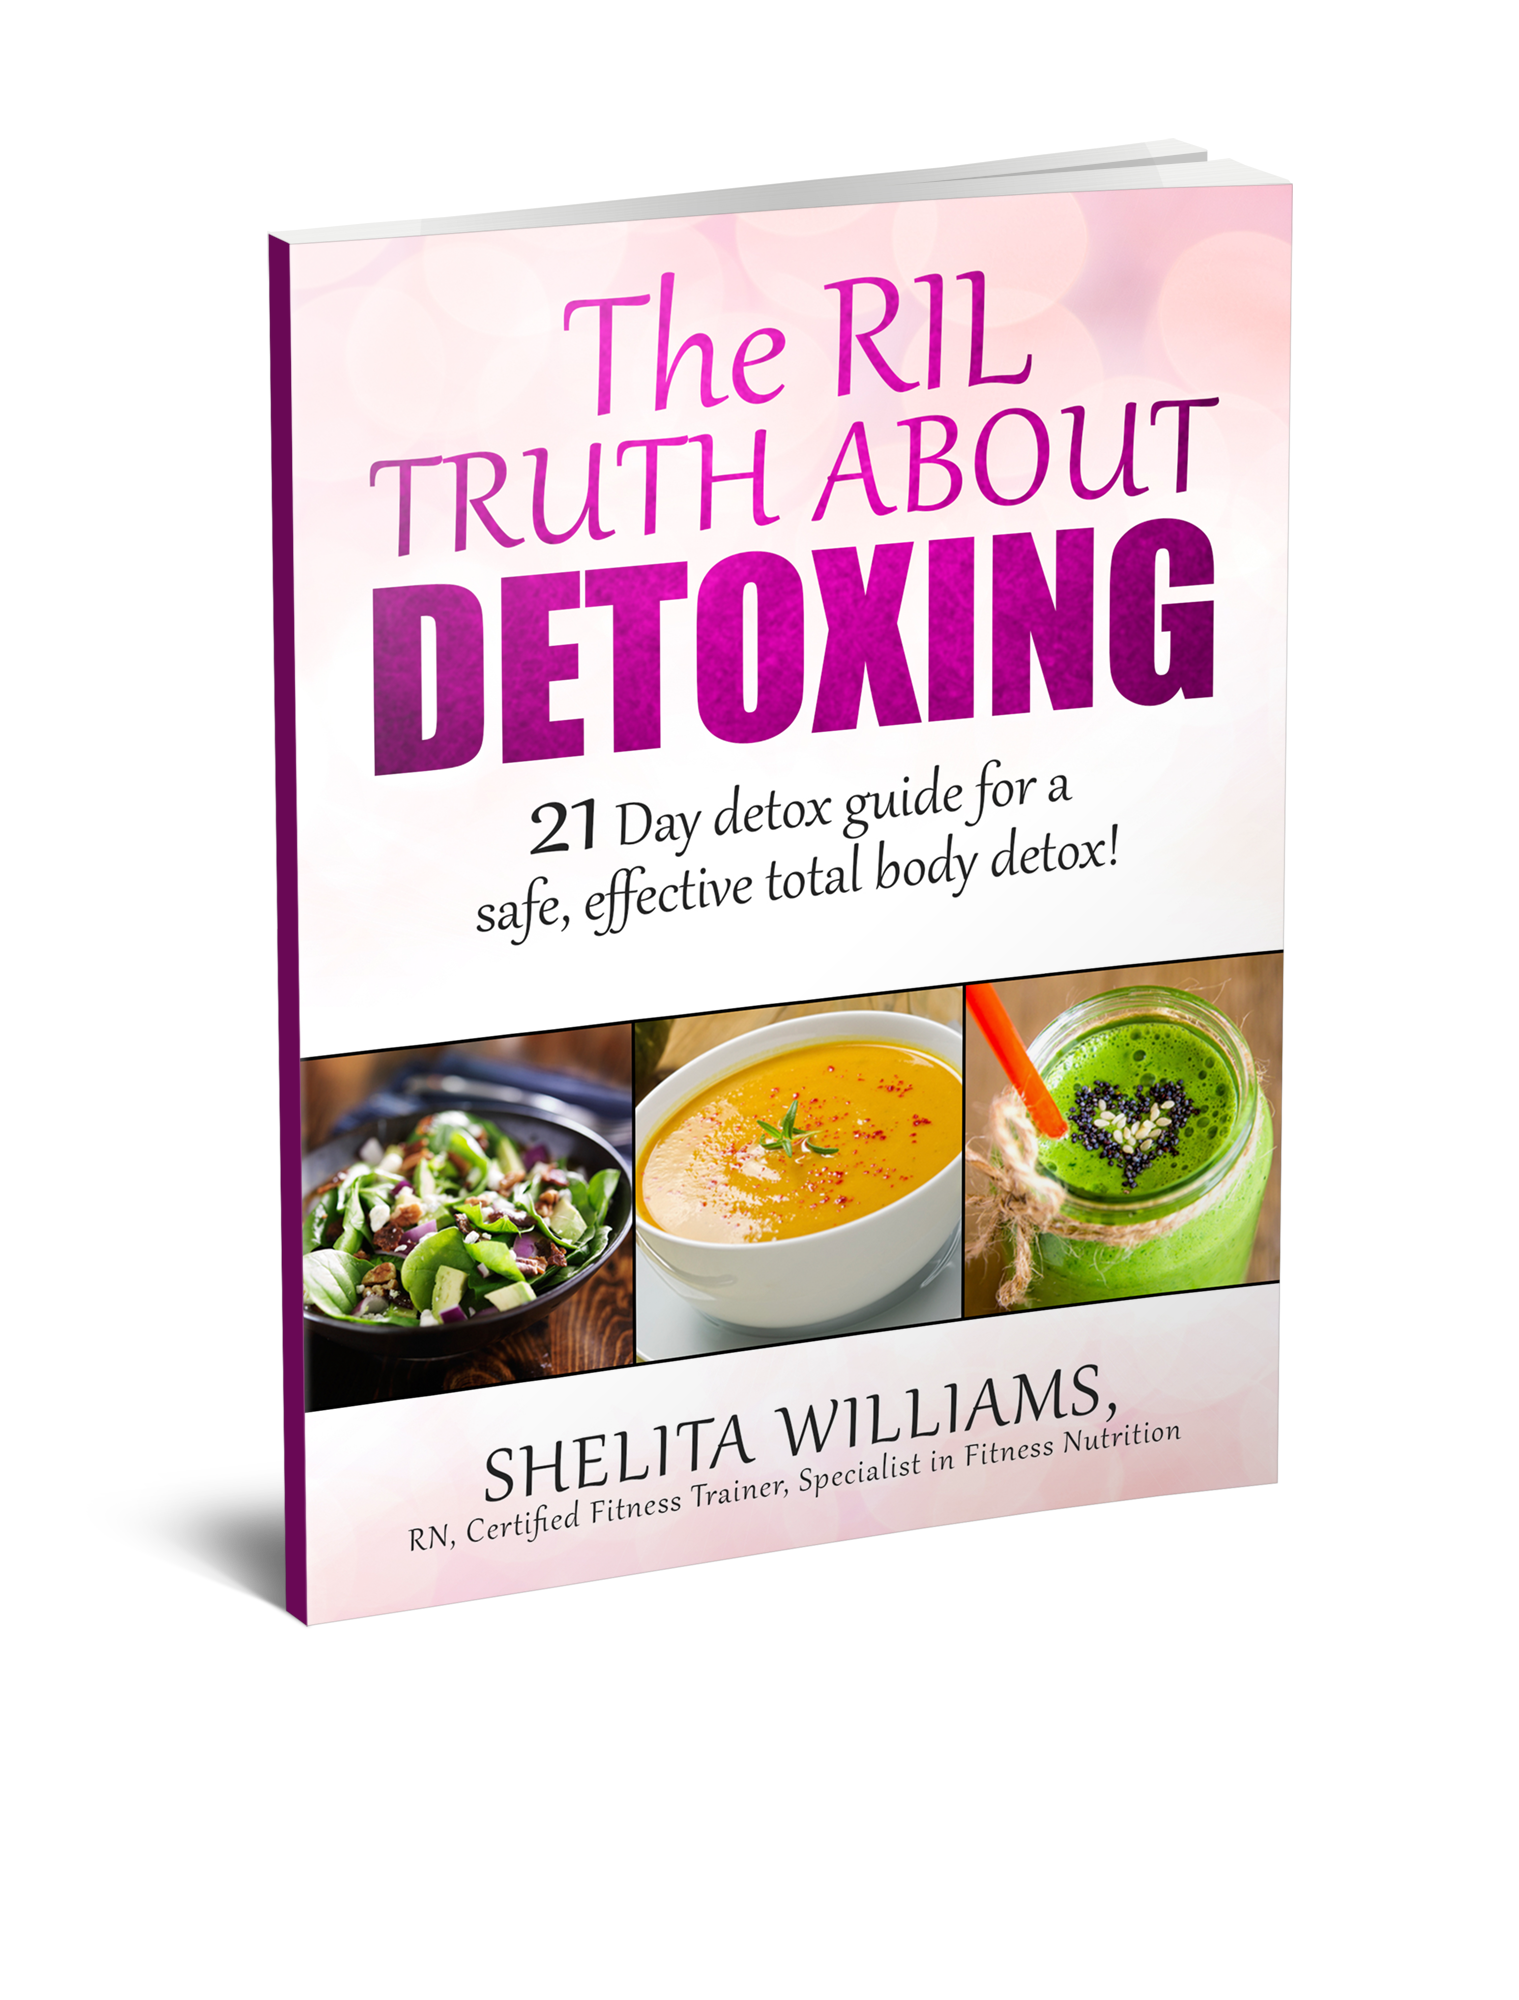 The RIL Truth About Detoxing!